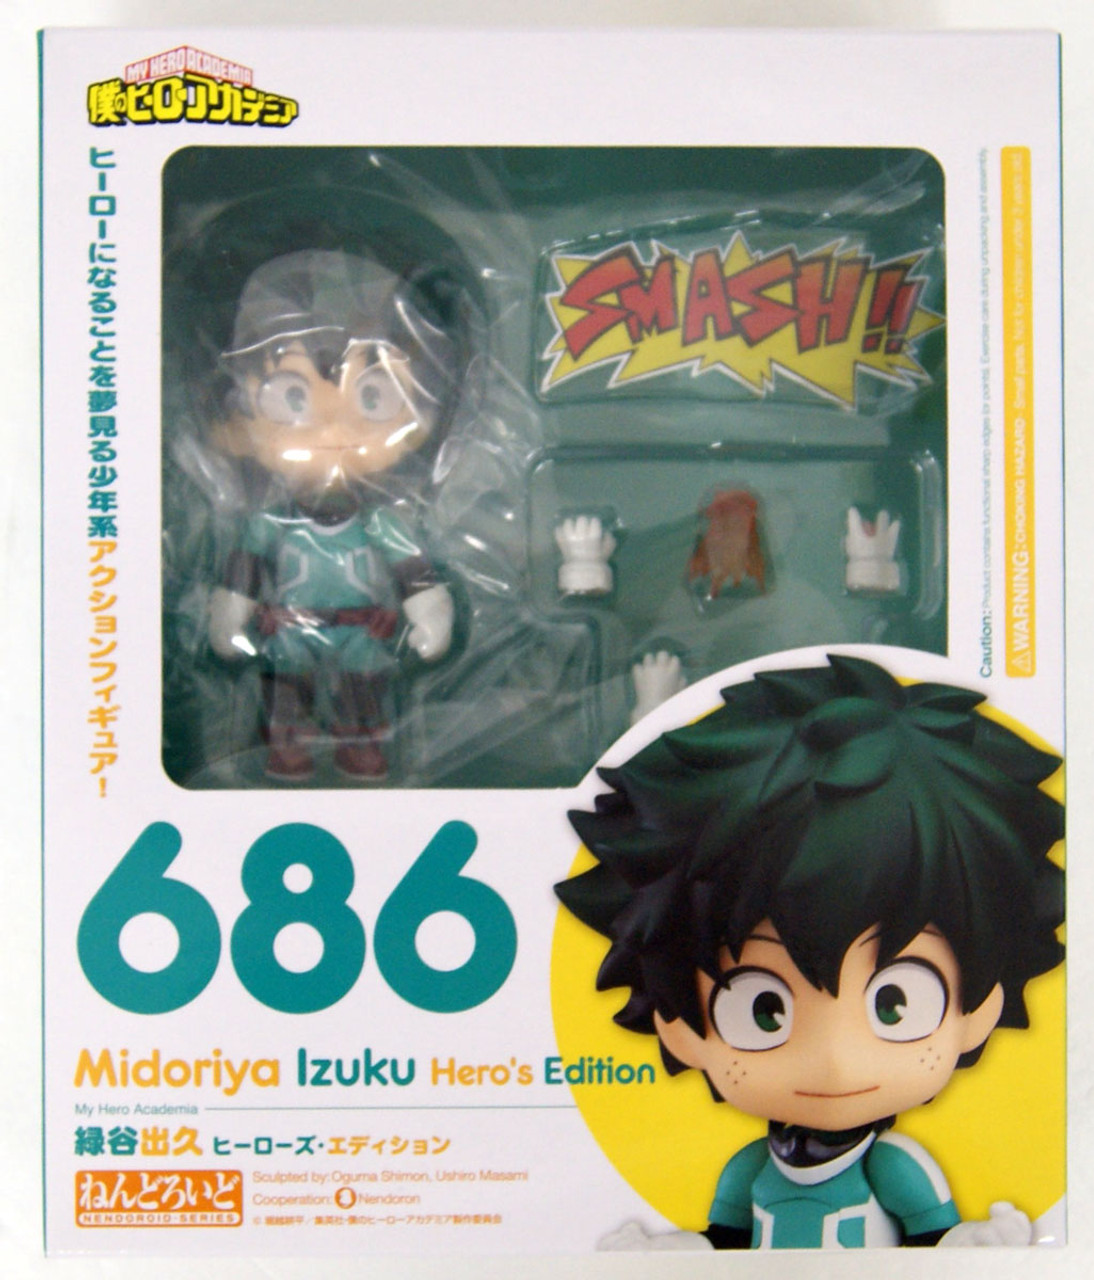 In STOCK Nendoroid My Hero Academia Ochaco Uraraka 1157 Action Figure